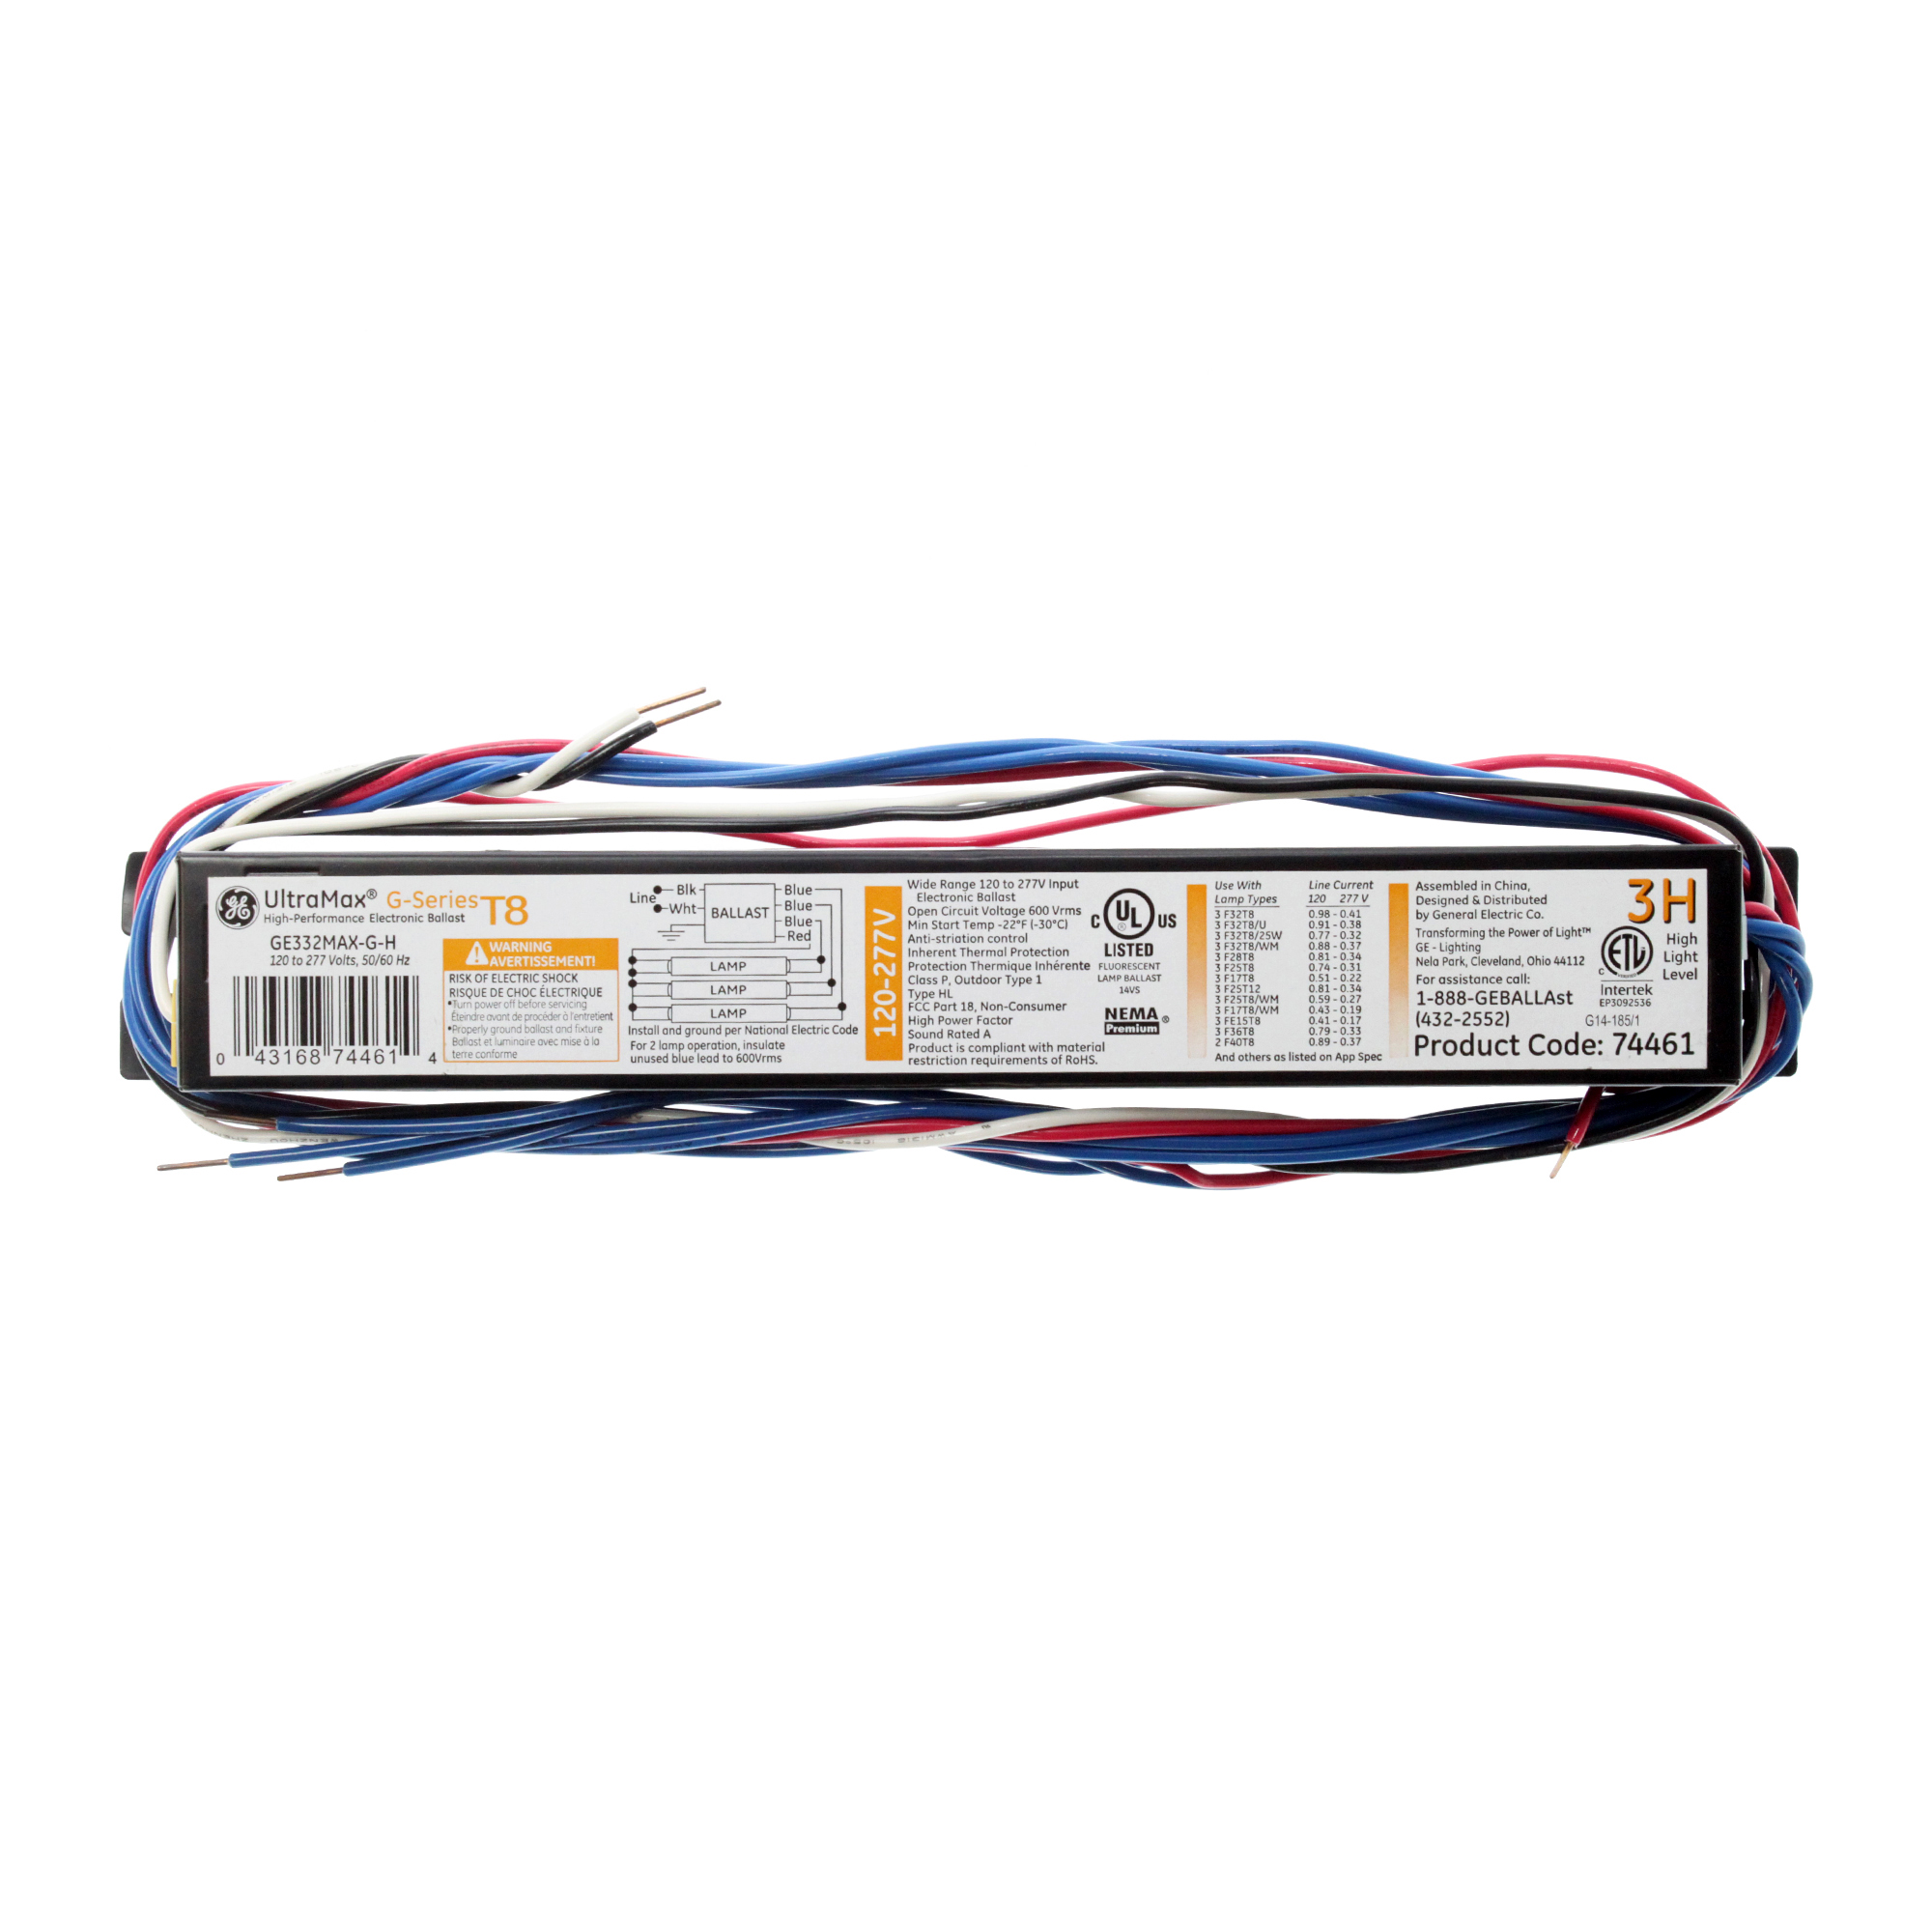 GE GE332-MAX-G-H 74461 HP Electronic Ballast, 3-Lamp, F32T8, 32W T8, 120/277V